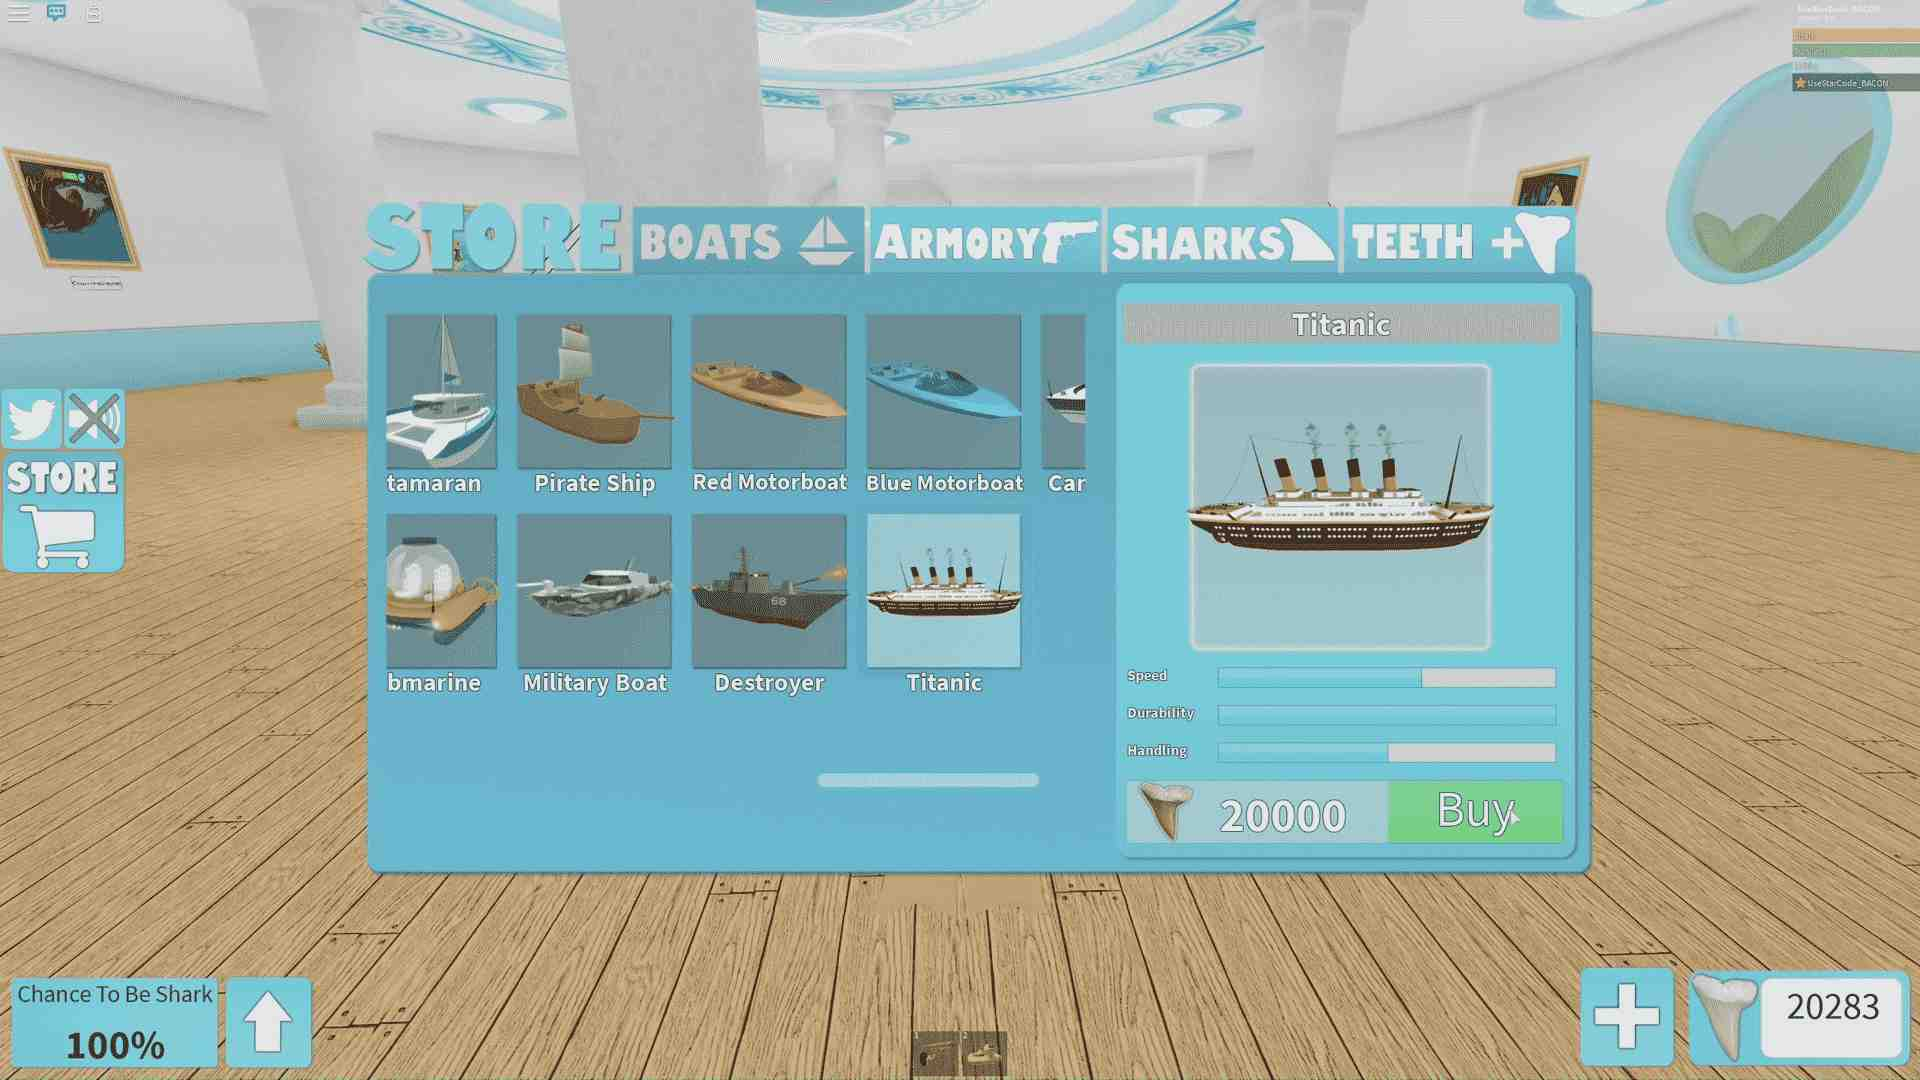 18 Roblox Sharkbite Codes To Get Free Shark Teeth March 2021 Game Specifications